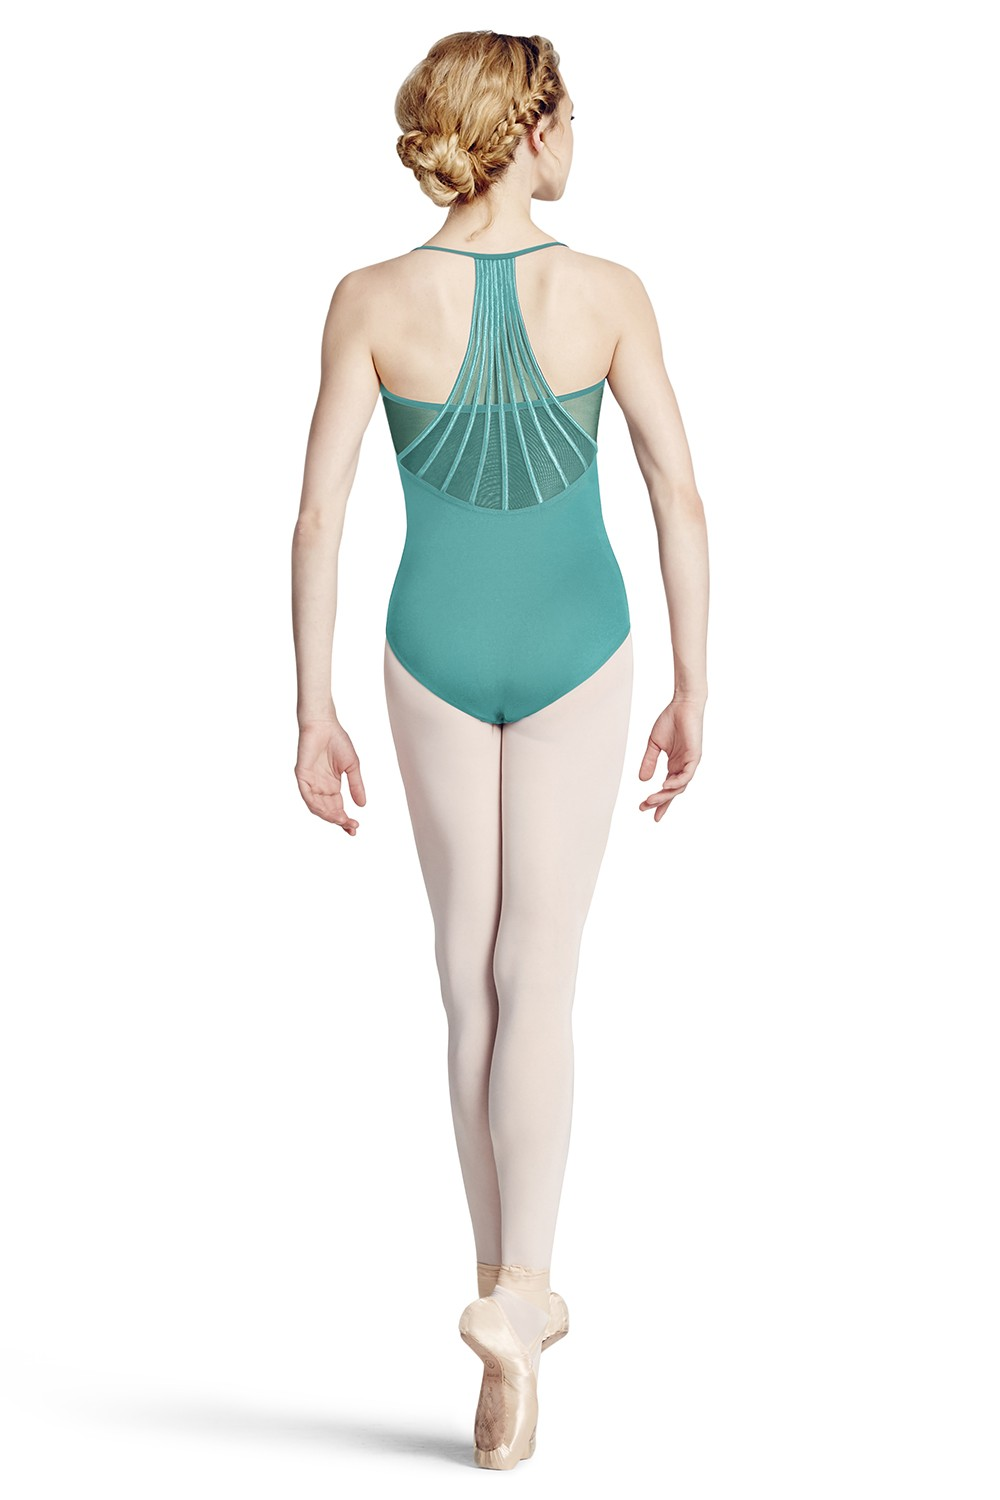 Rigel Women's Dance Leotards